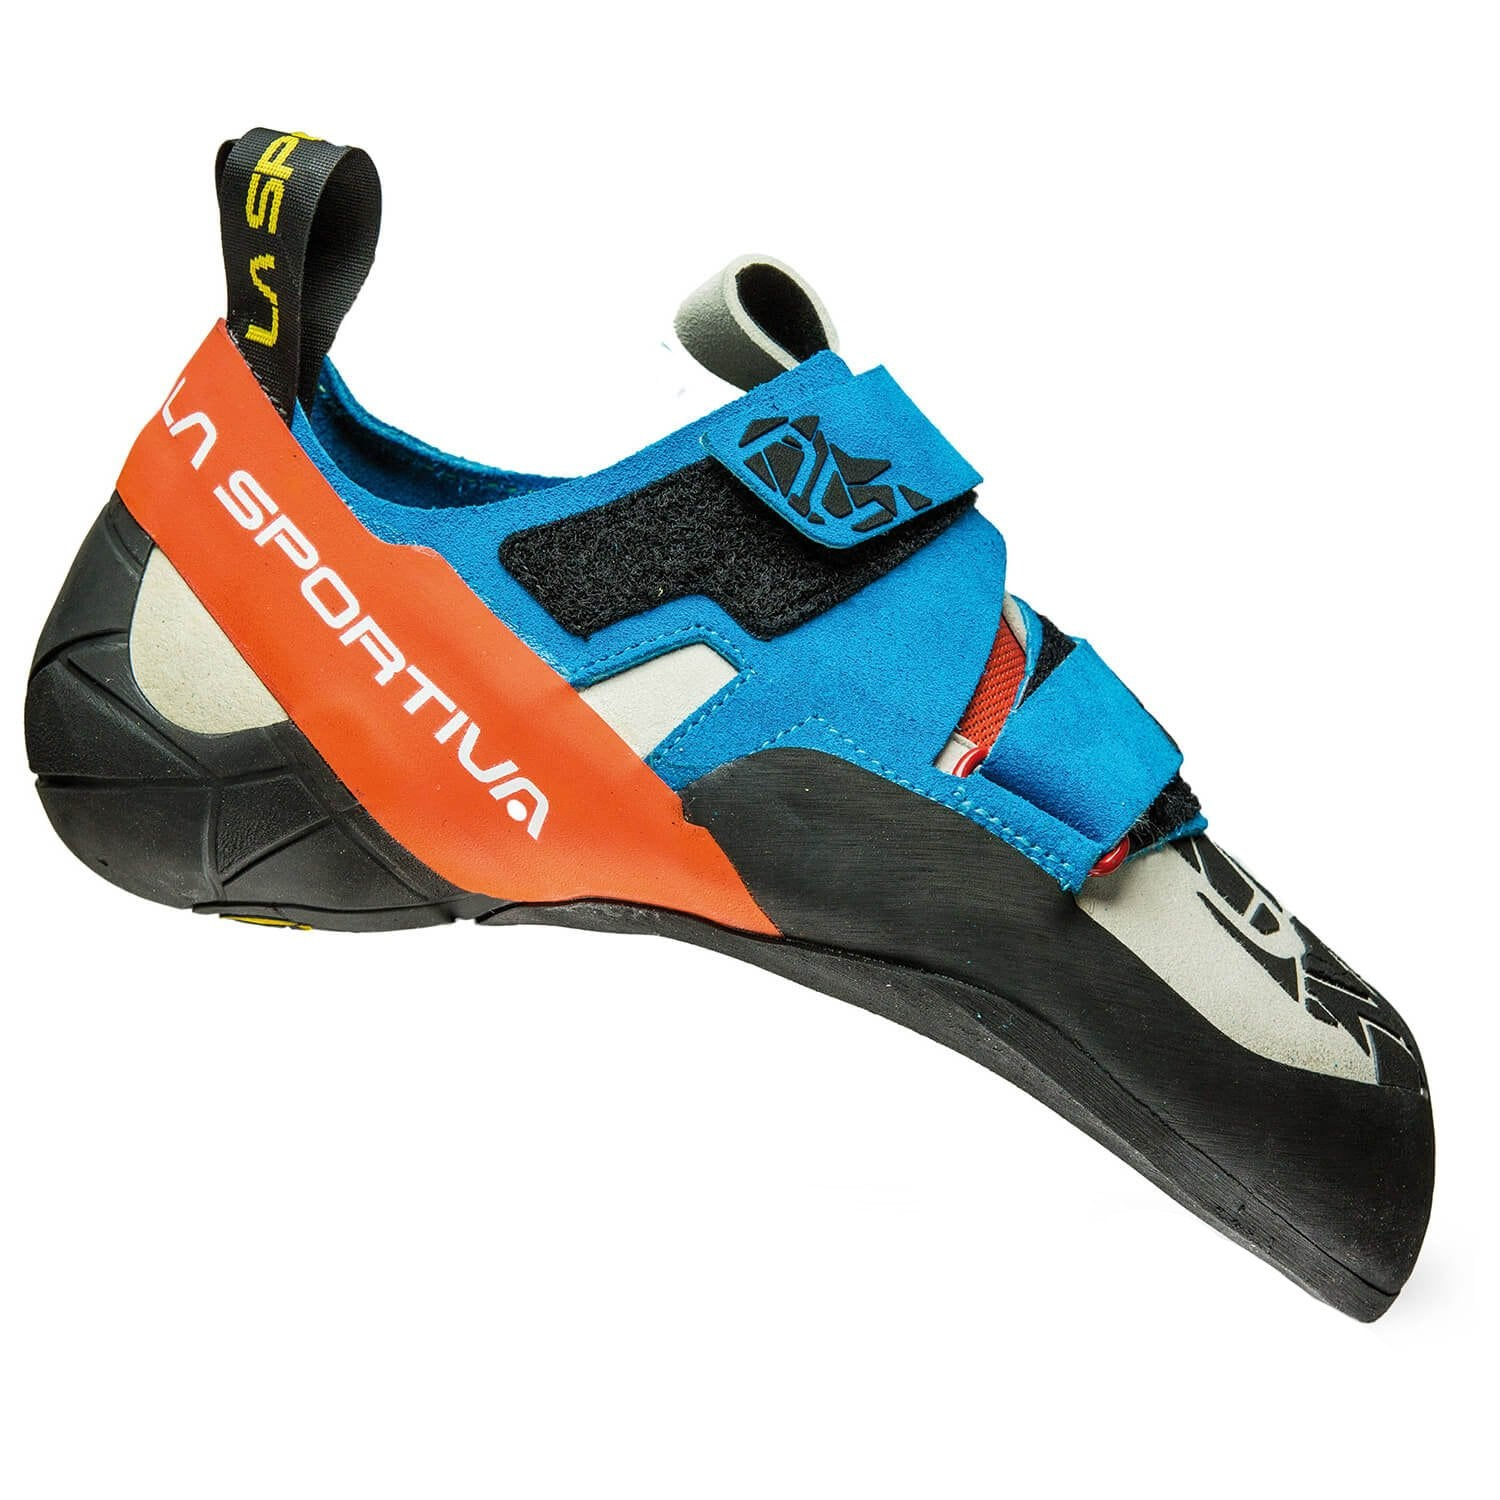 La Sportiva Otaki climbing shoe, in black, orange and blue colours